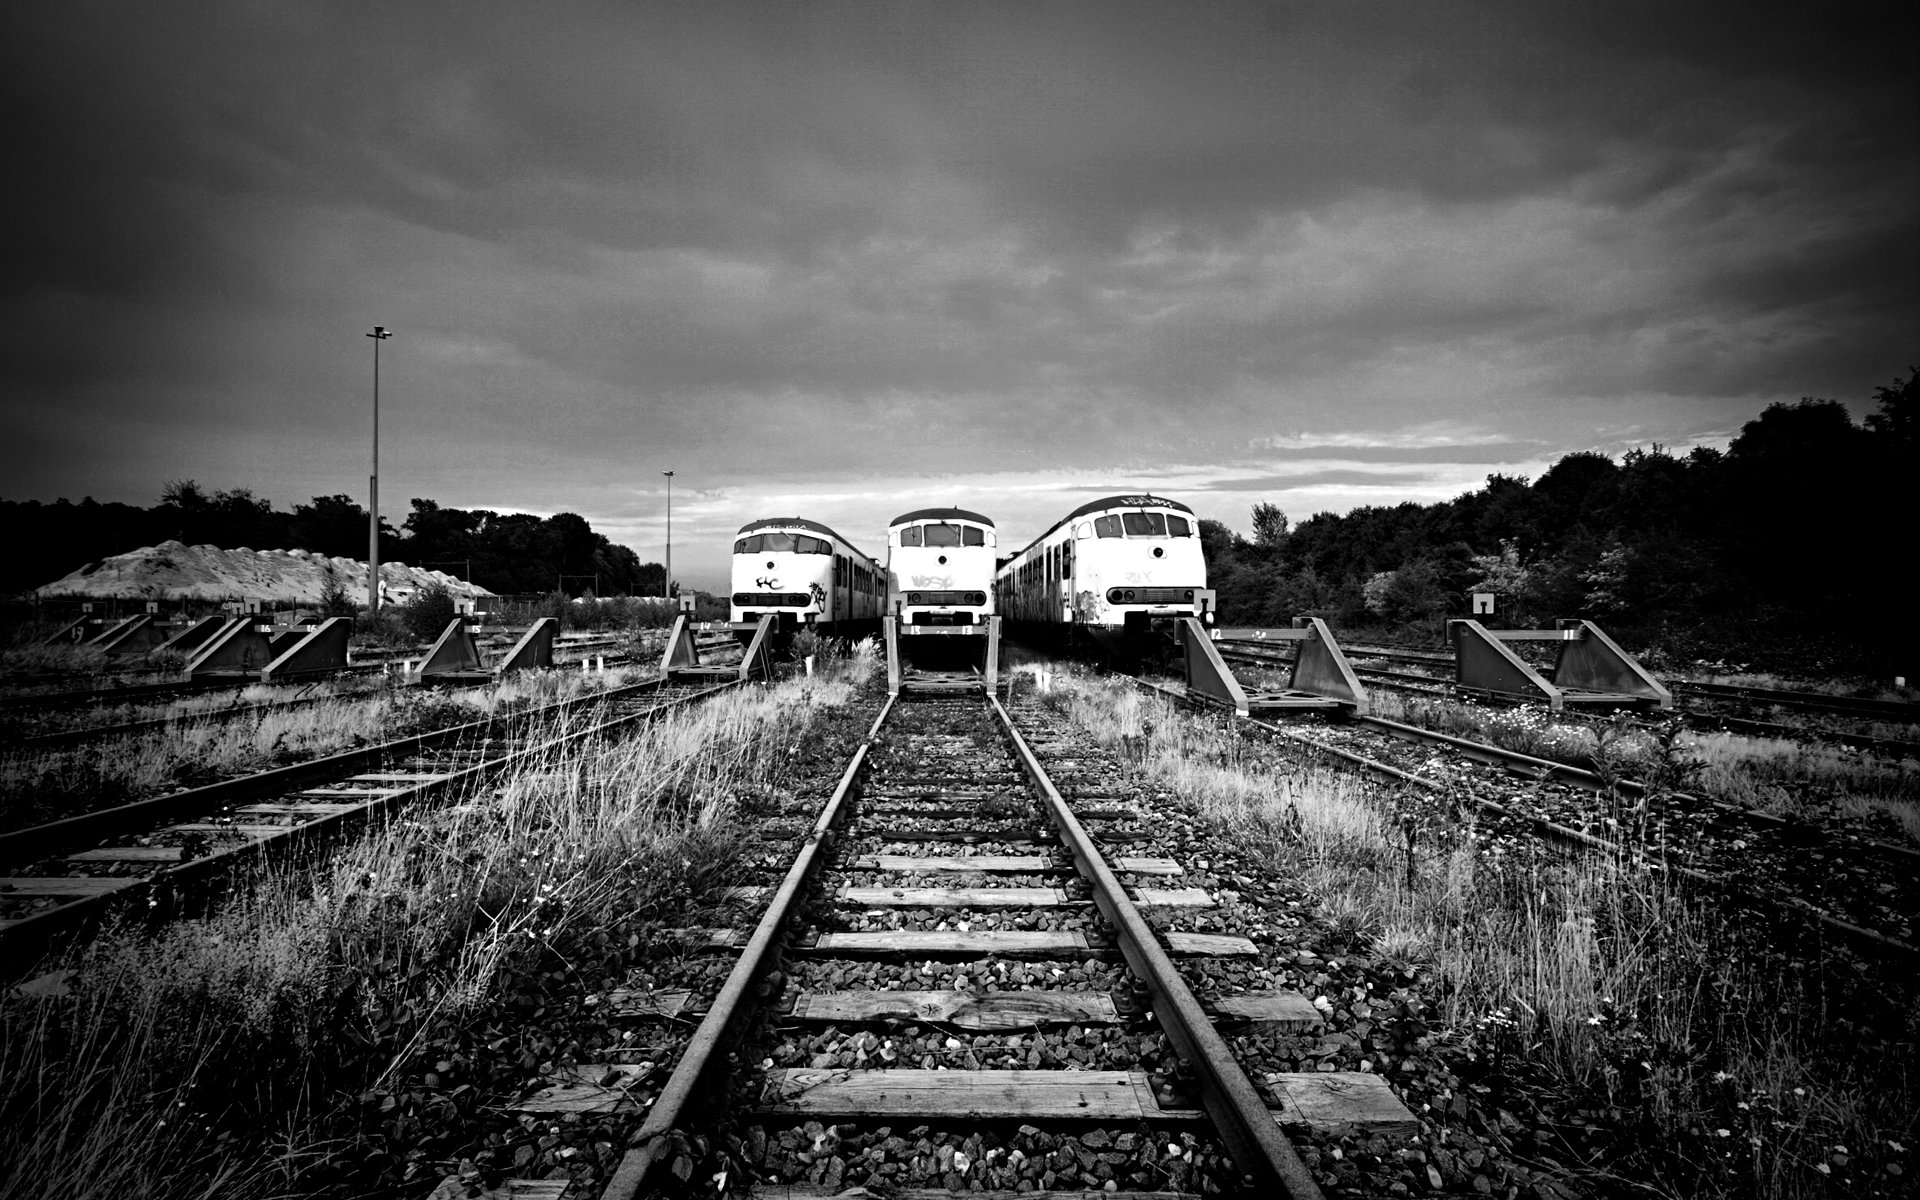 Three Old Train Wallpaper HD 9899 Wallpaper Wallpaper Screen 1920x1200